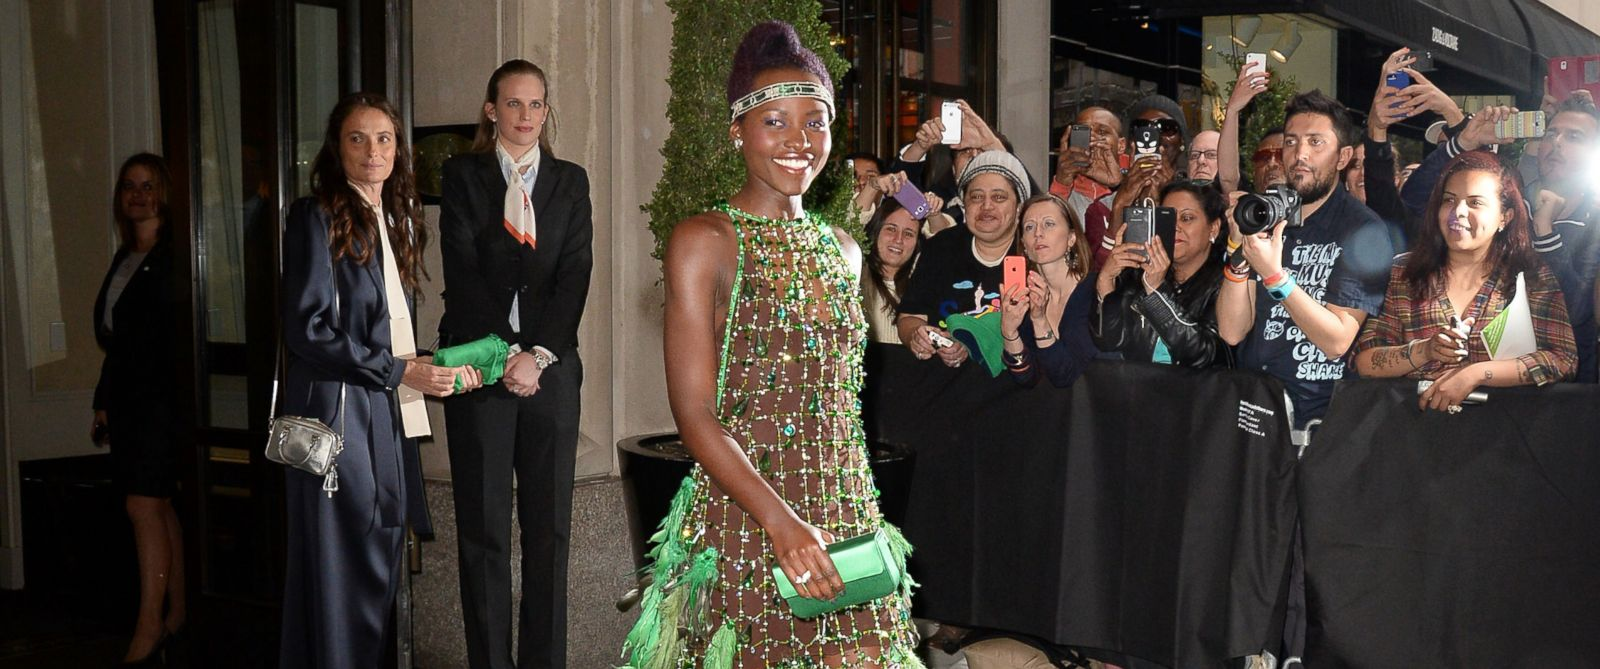 "PHOTO: Actress Lupita Nyongo is seen outside the ""Mark Hotel""before attending the Met Gala on May 5, 2014 in New York City."